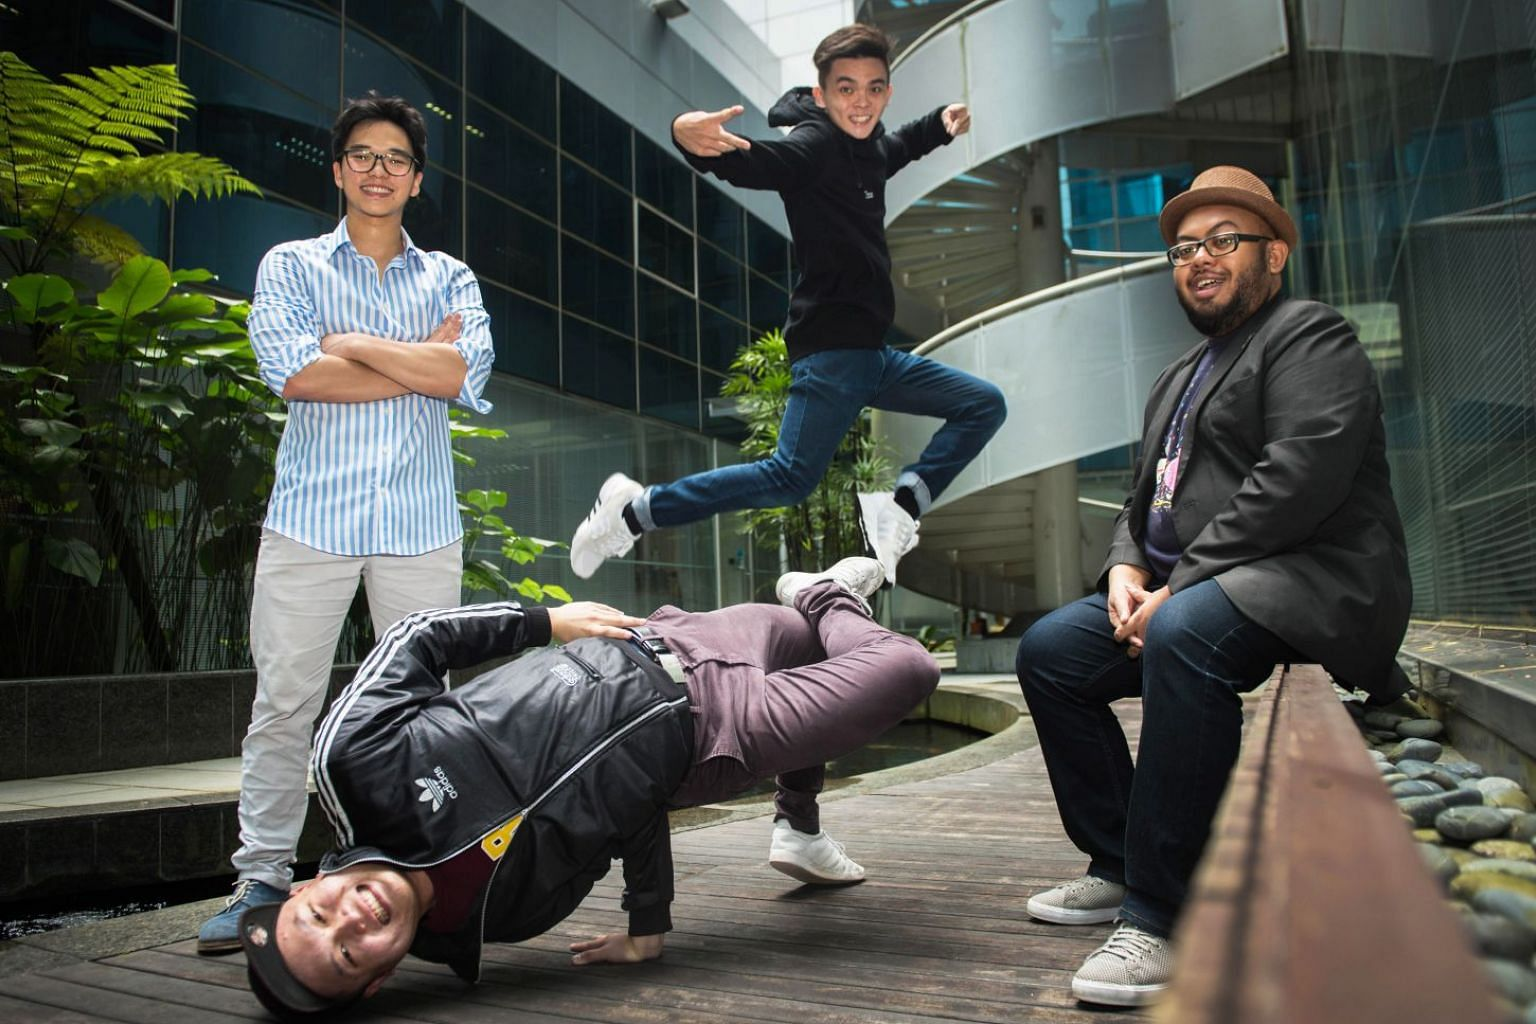 Clockwise from far left) Edward Eng, Michael Ng, Mohamad Shaifulbahri and Dominic Nah are the creators behind the performance, dead was the body till i taught it how to move, a play about b-boys.